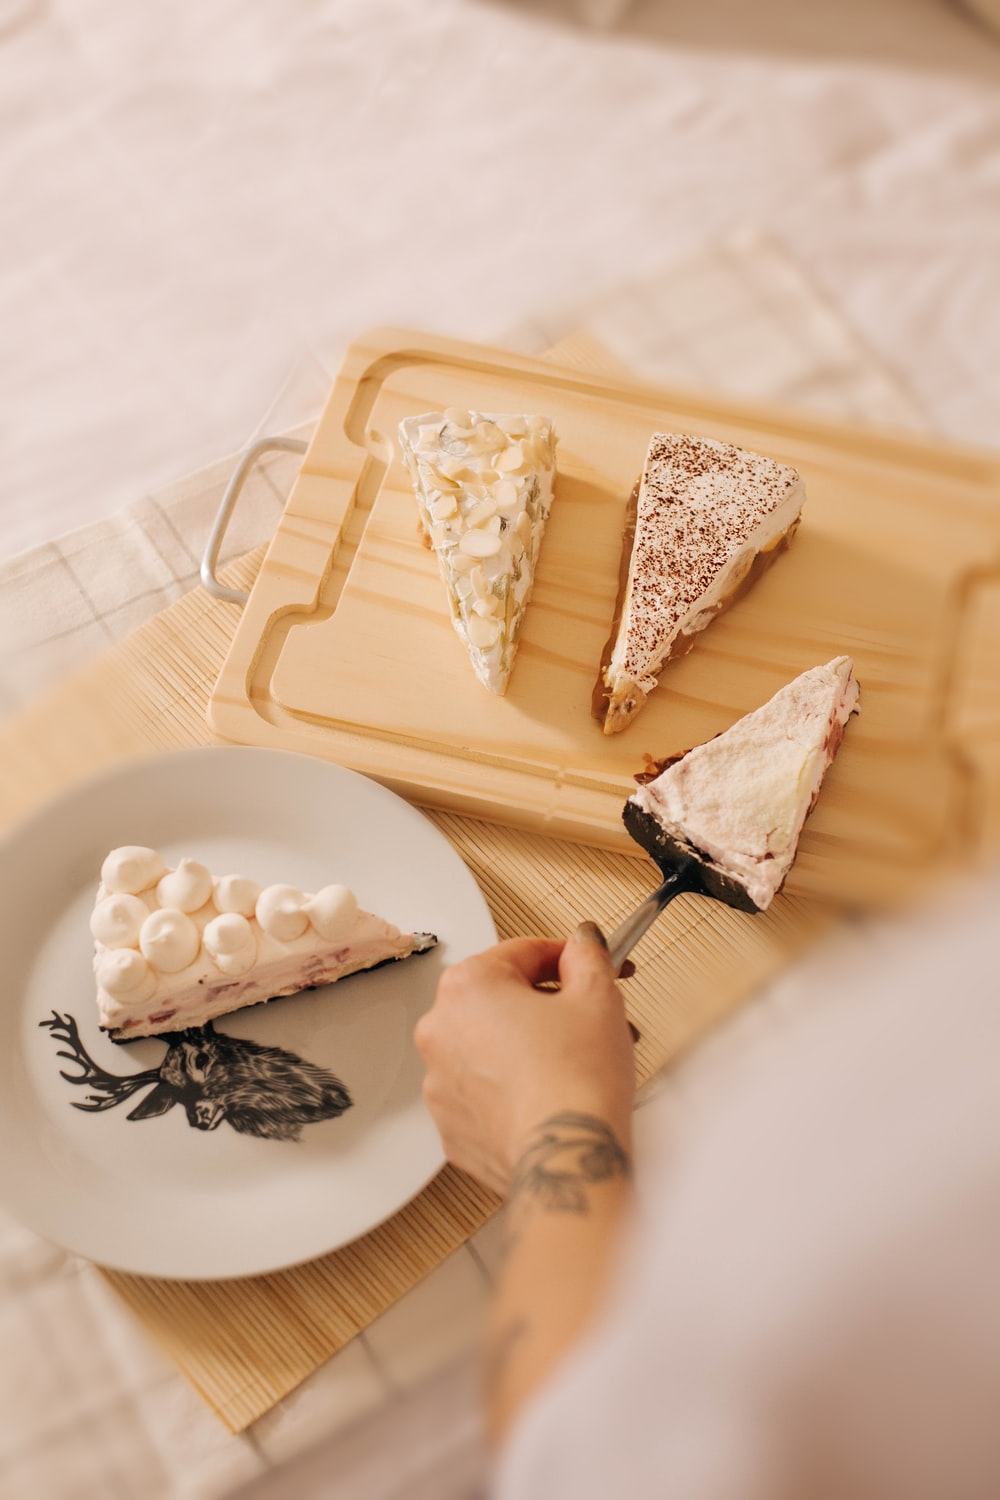 person slicing white cheese on white tray